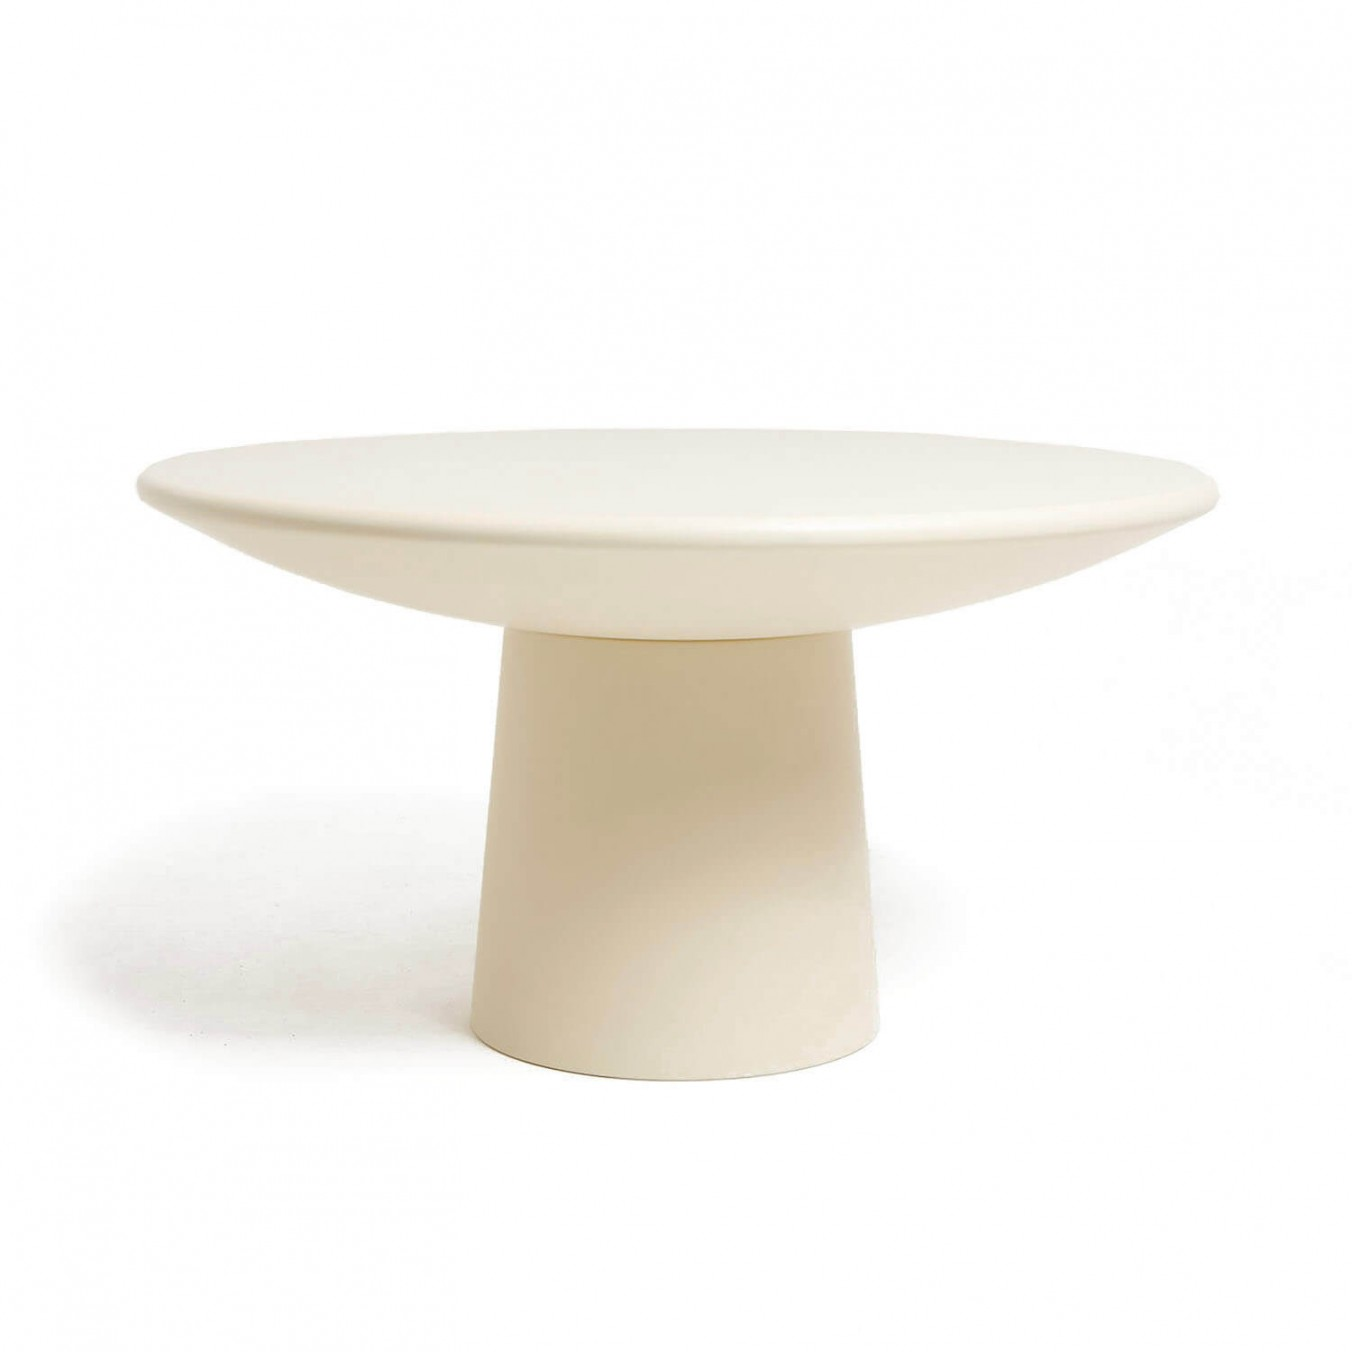 Roly-Poly Dining Table